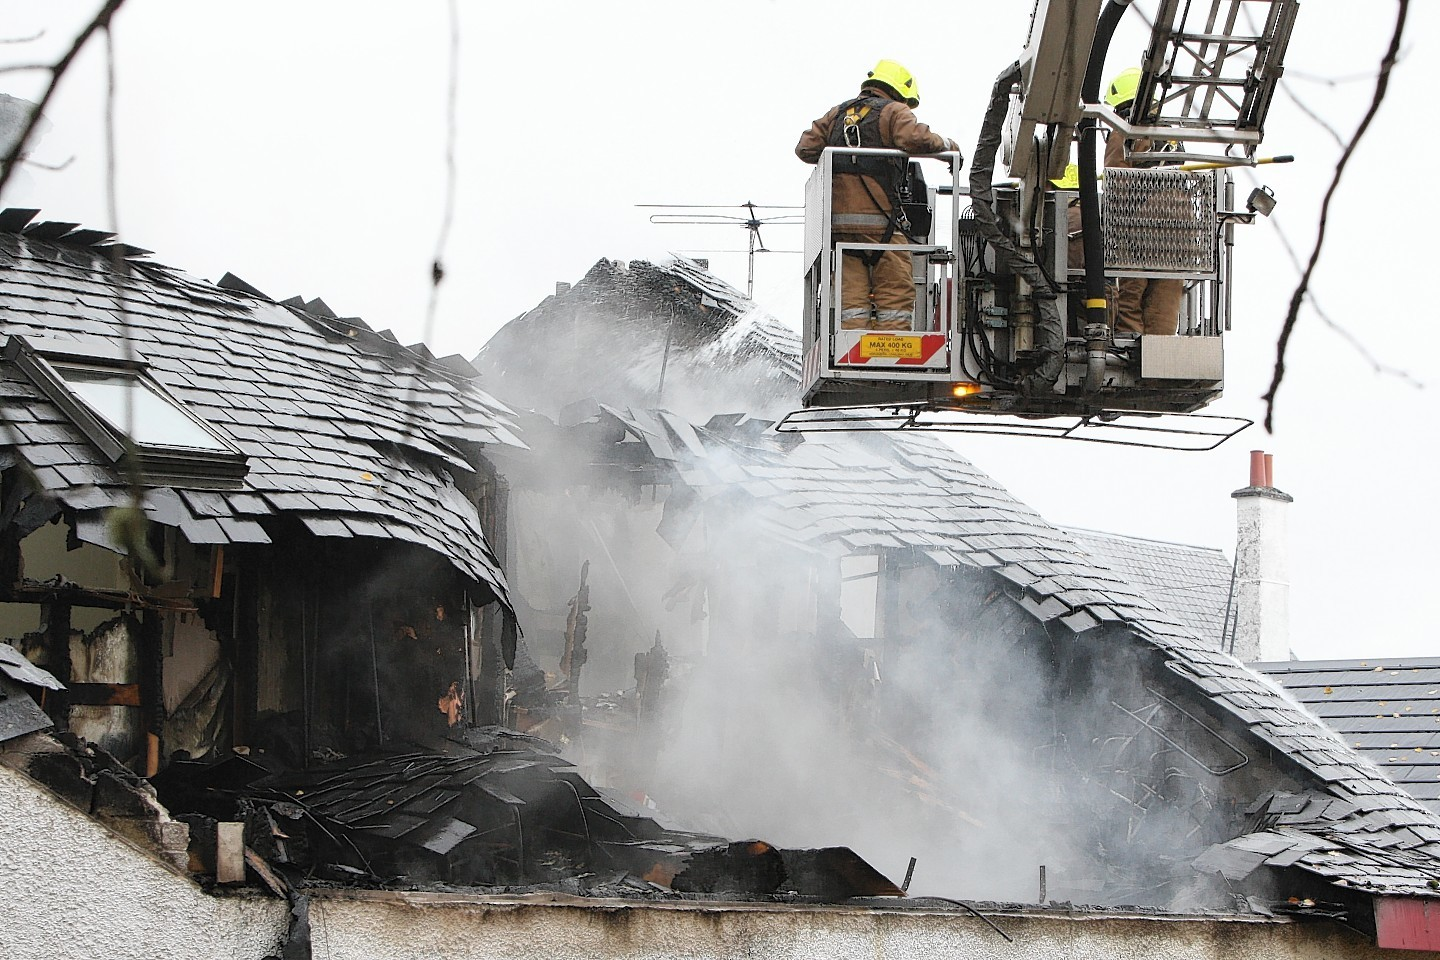 The Cill Chuimein medical centre in Fort Augustus was destroyed by fire